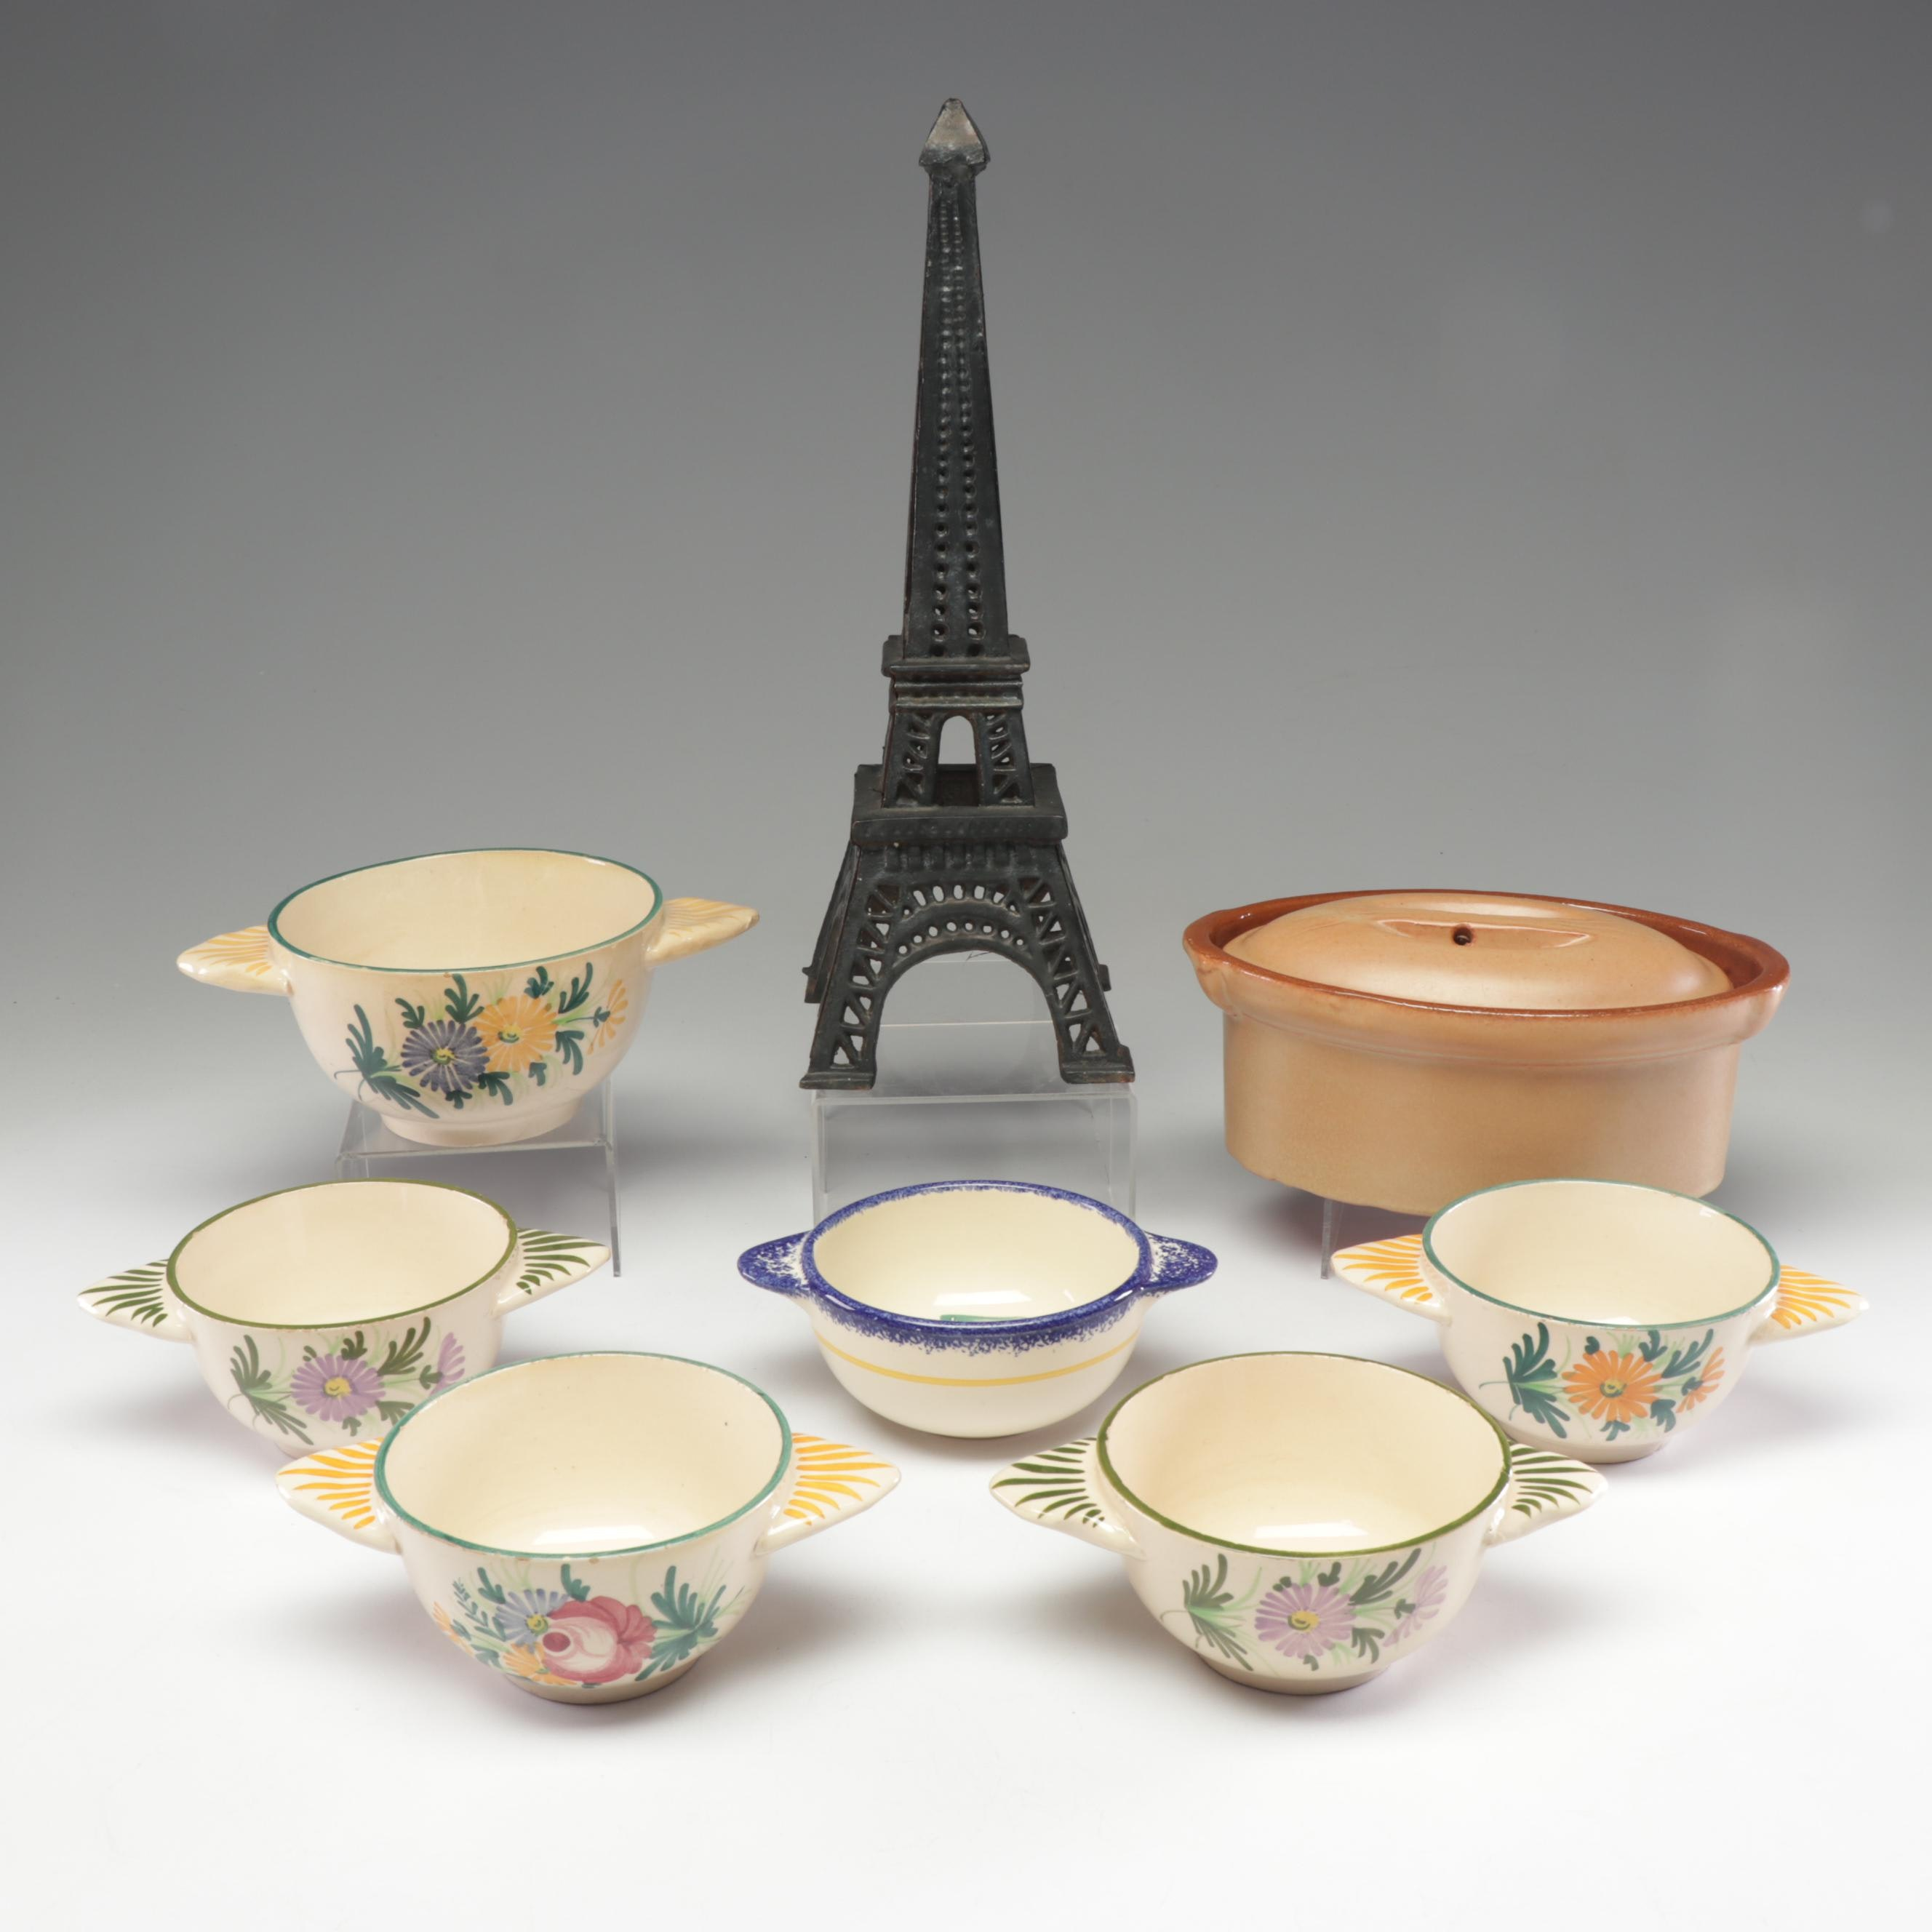 French Ceramic Bowls, Lidded Dish, and Iron Eiffel Tower